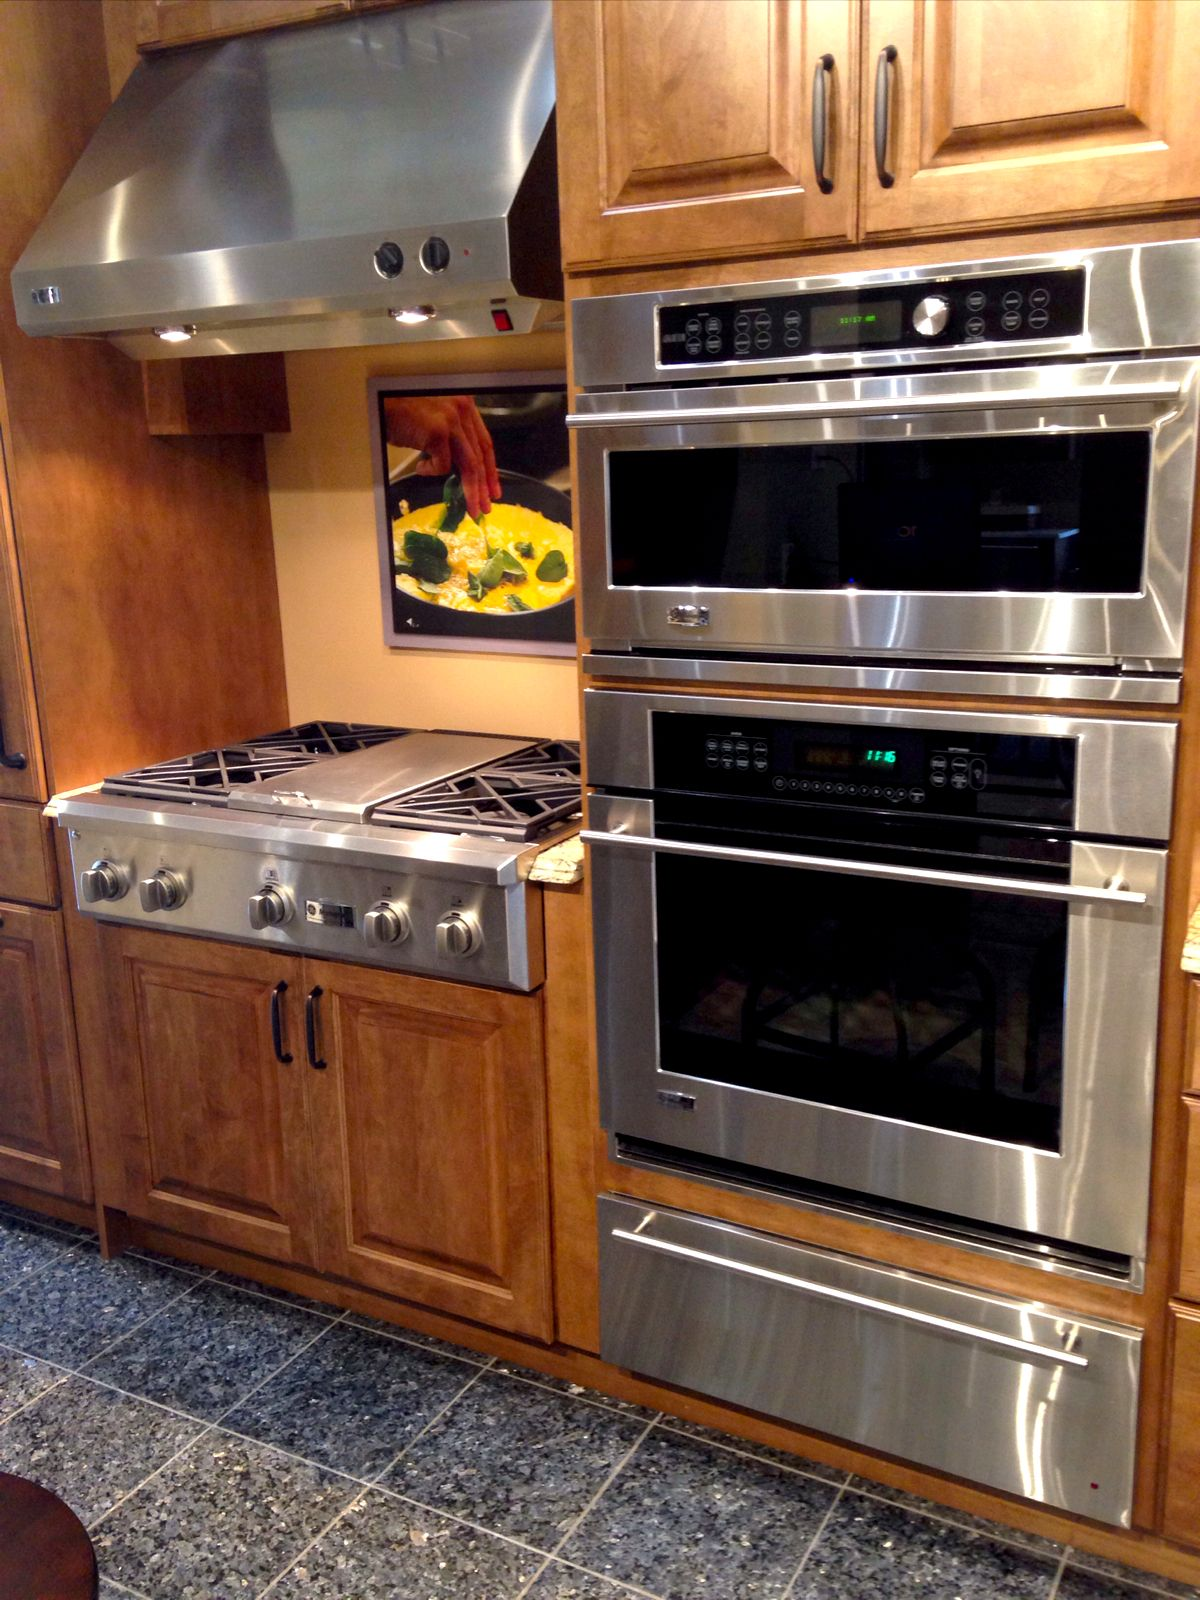 Ge Monogram Appliances Nonnsappliances Www Nonns Com Wall Oven Kitchen Wall Oven Kitchen Remodel